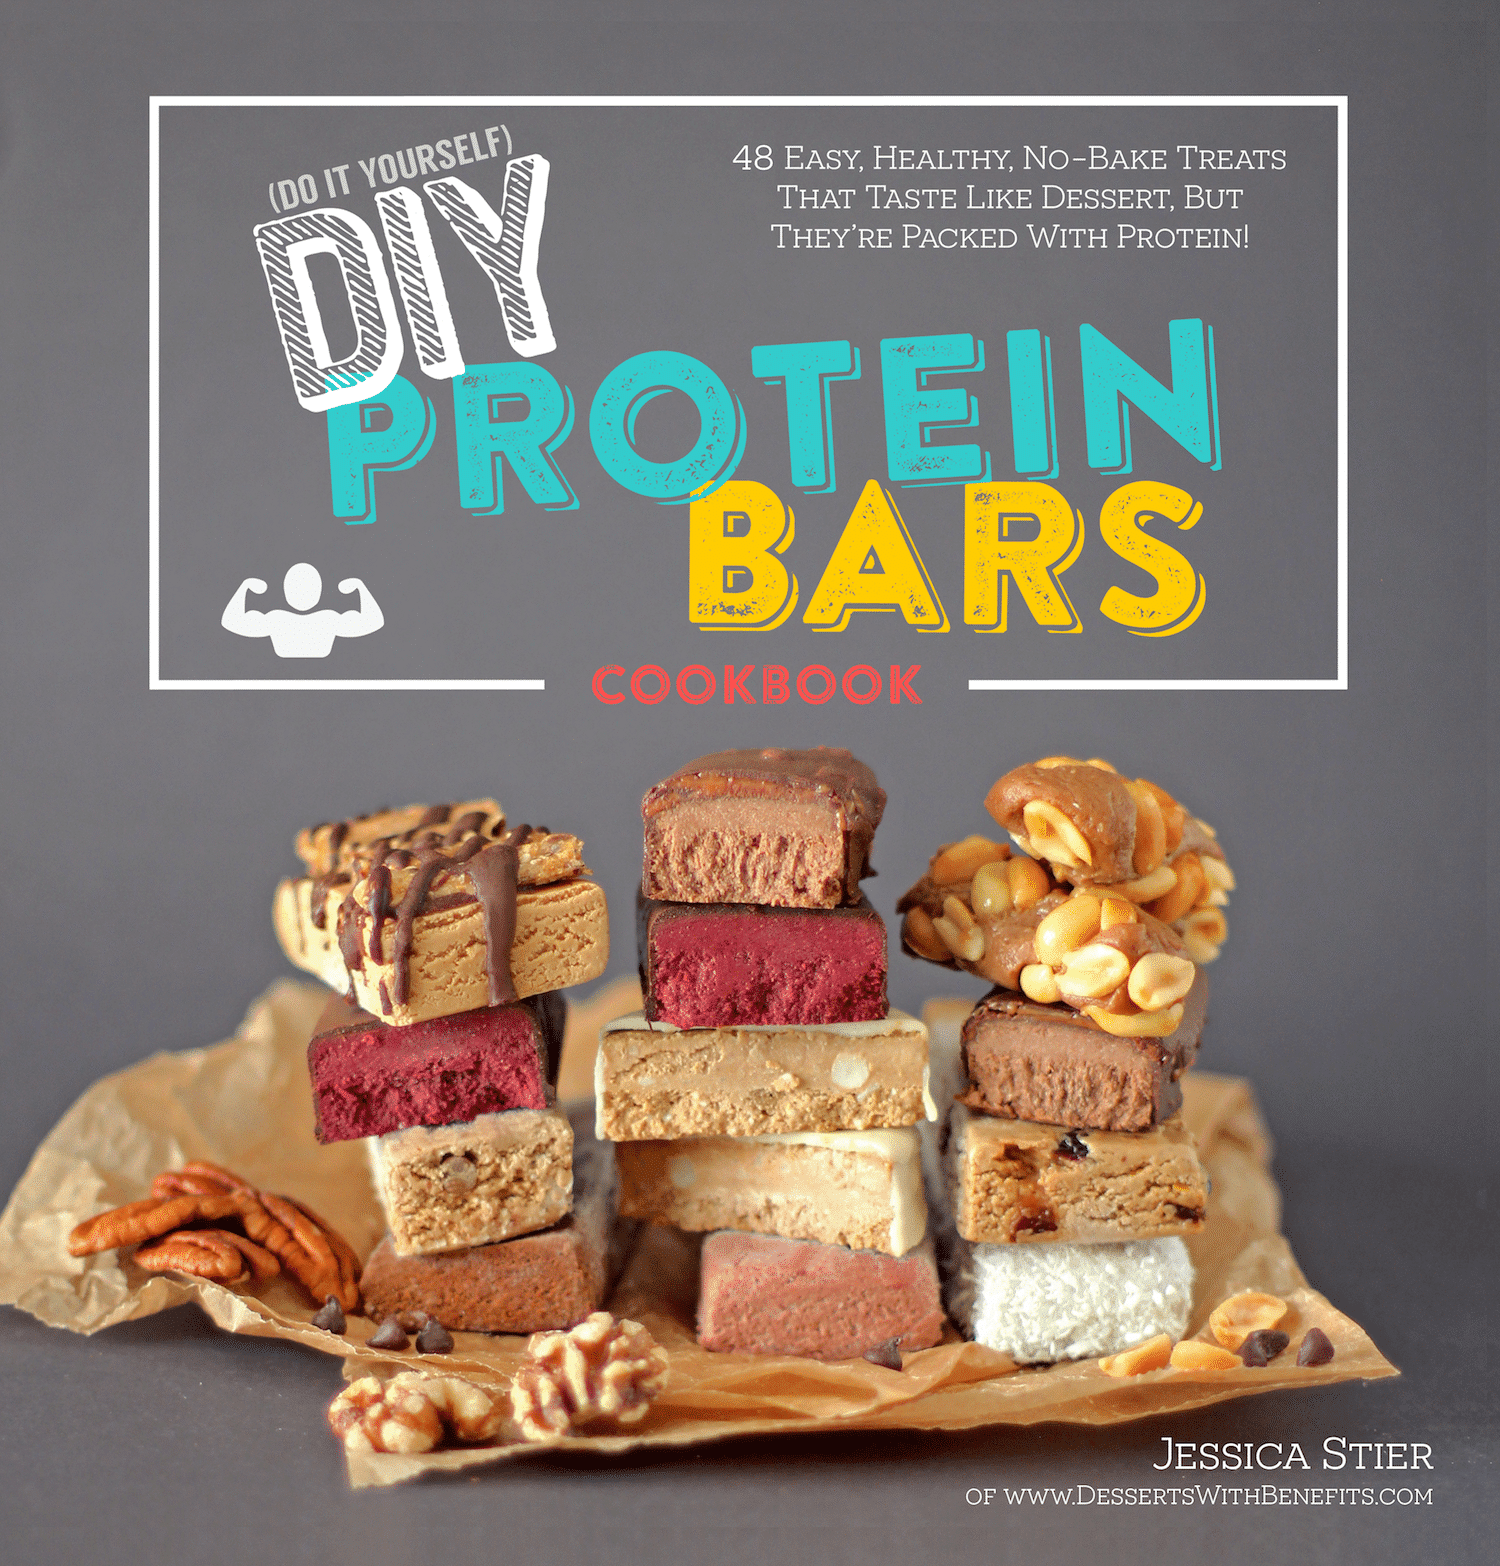 DIY Protein Bars Cookbook – authored by Jessica Stier of the Desserts with Benefits Blog